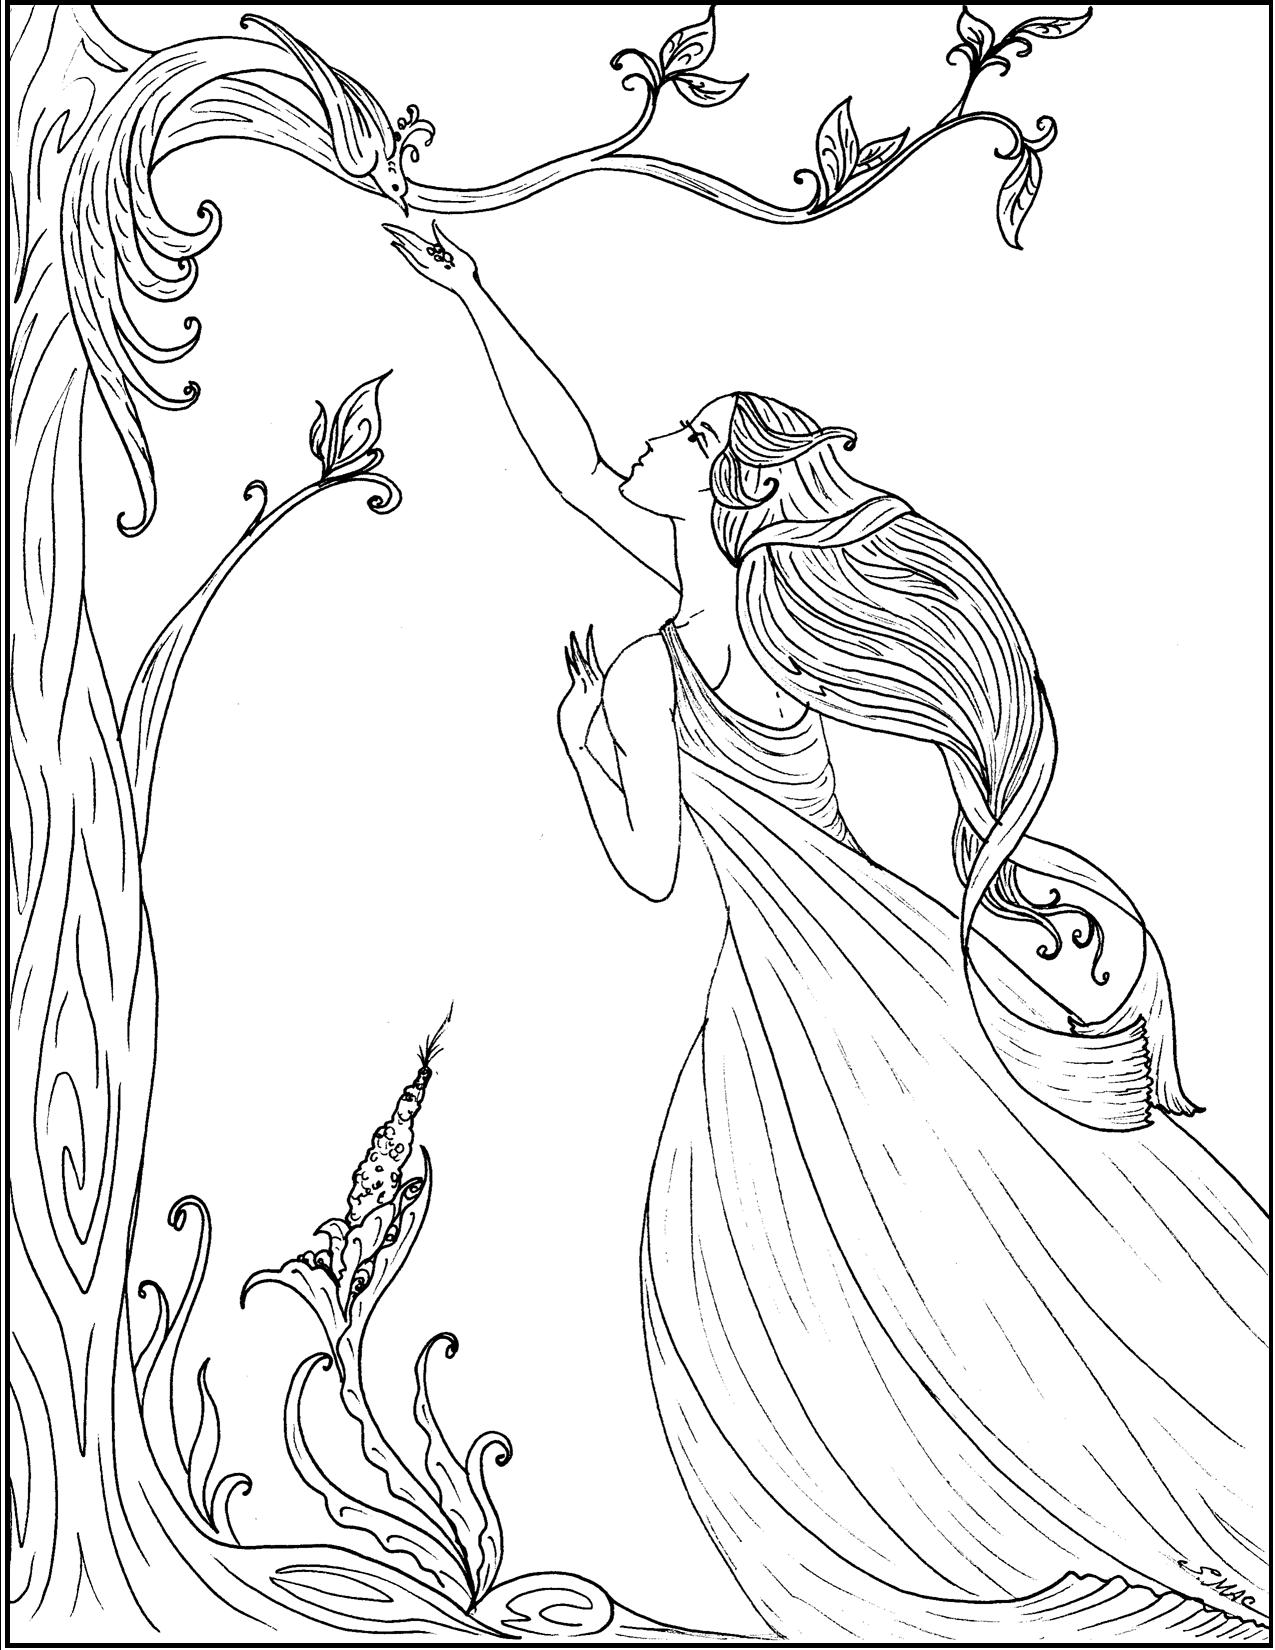 Art nouveau coloring pages to download and print for free